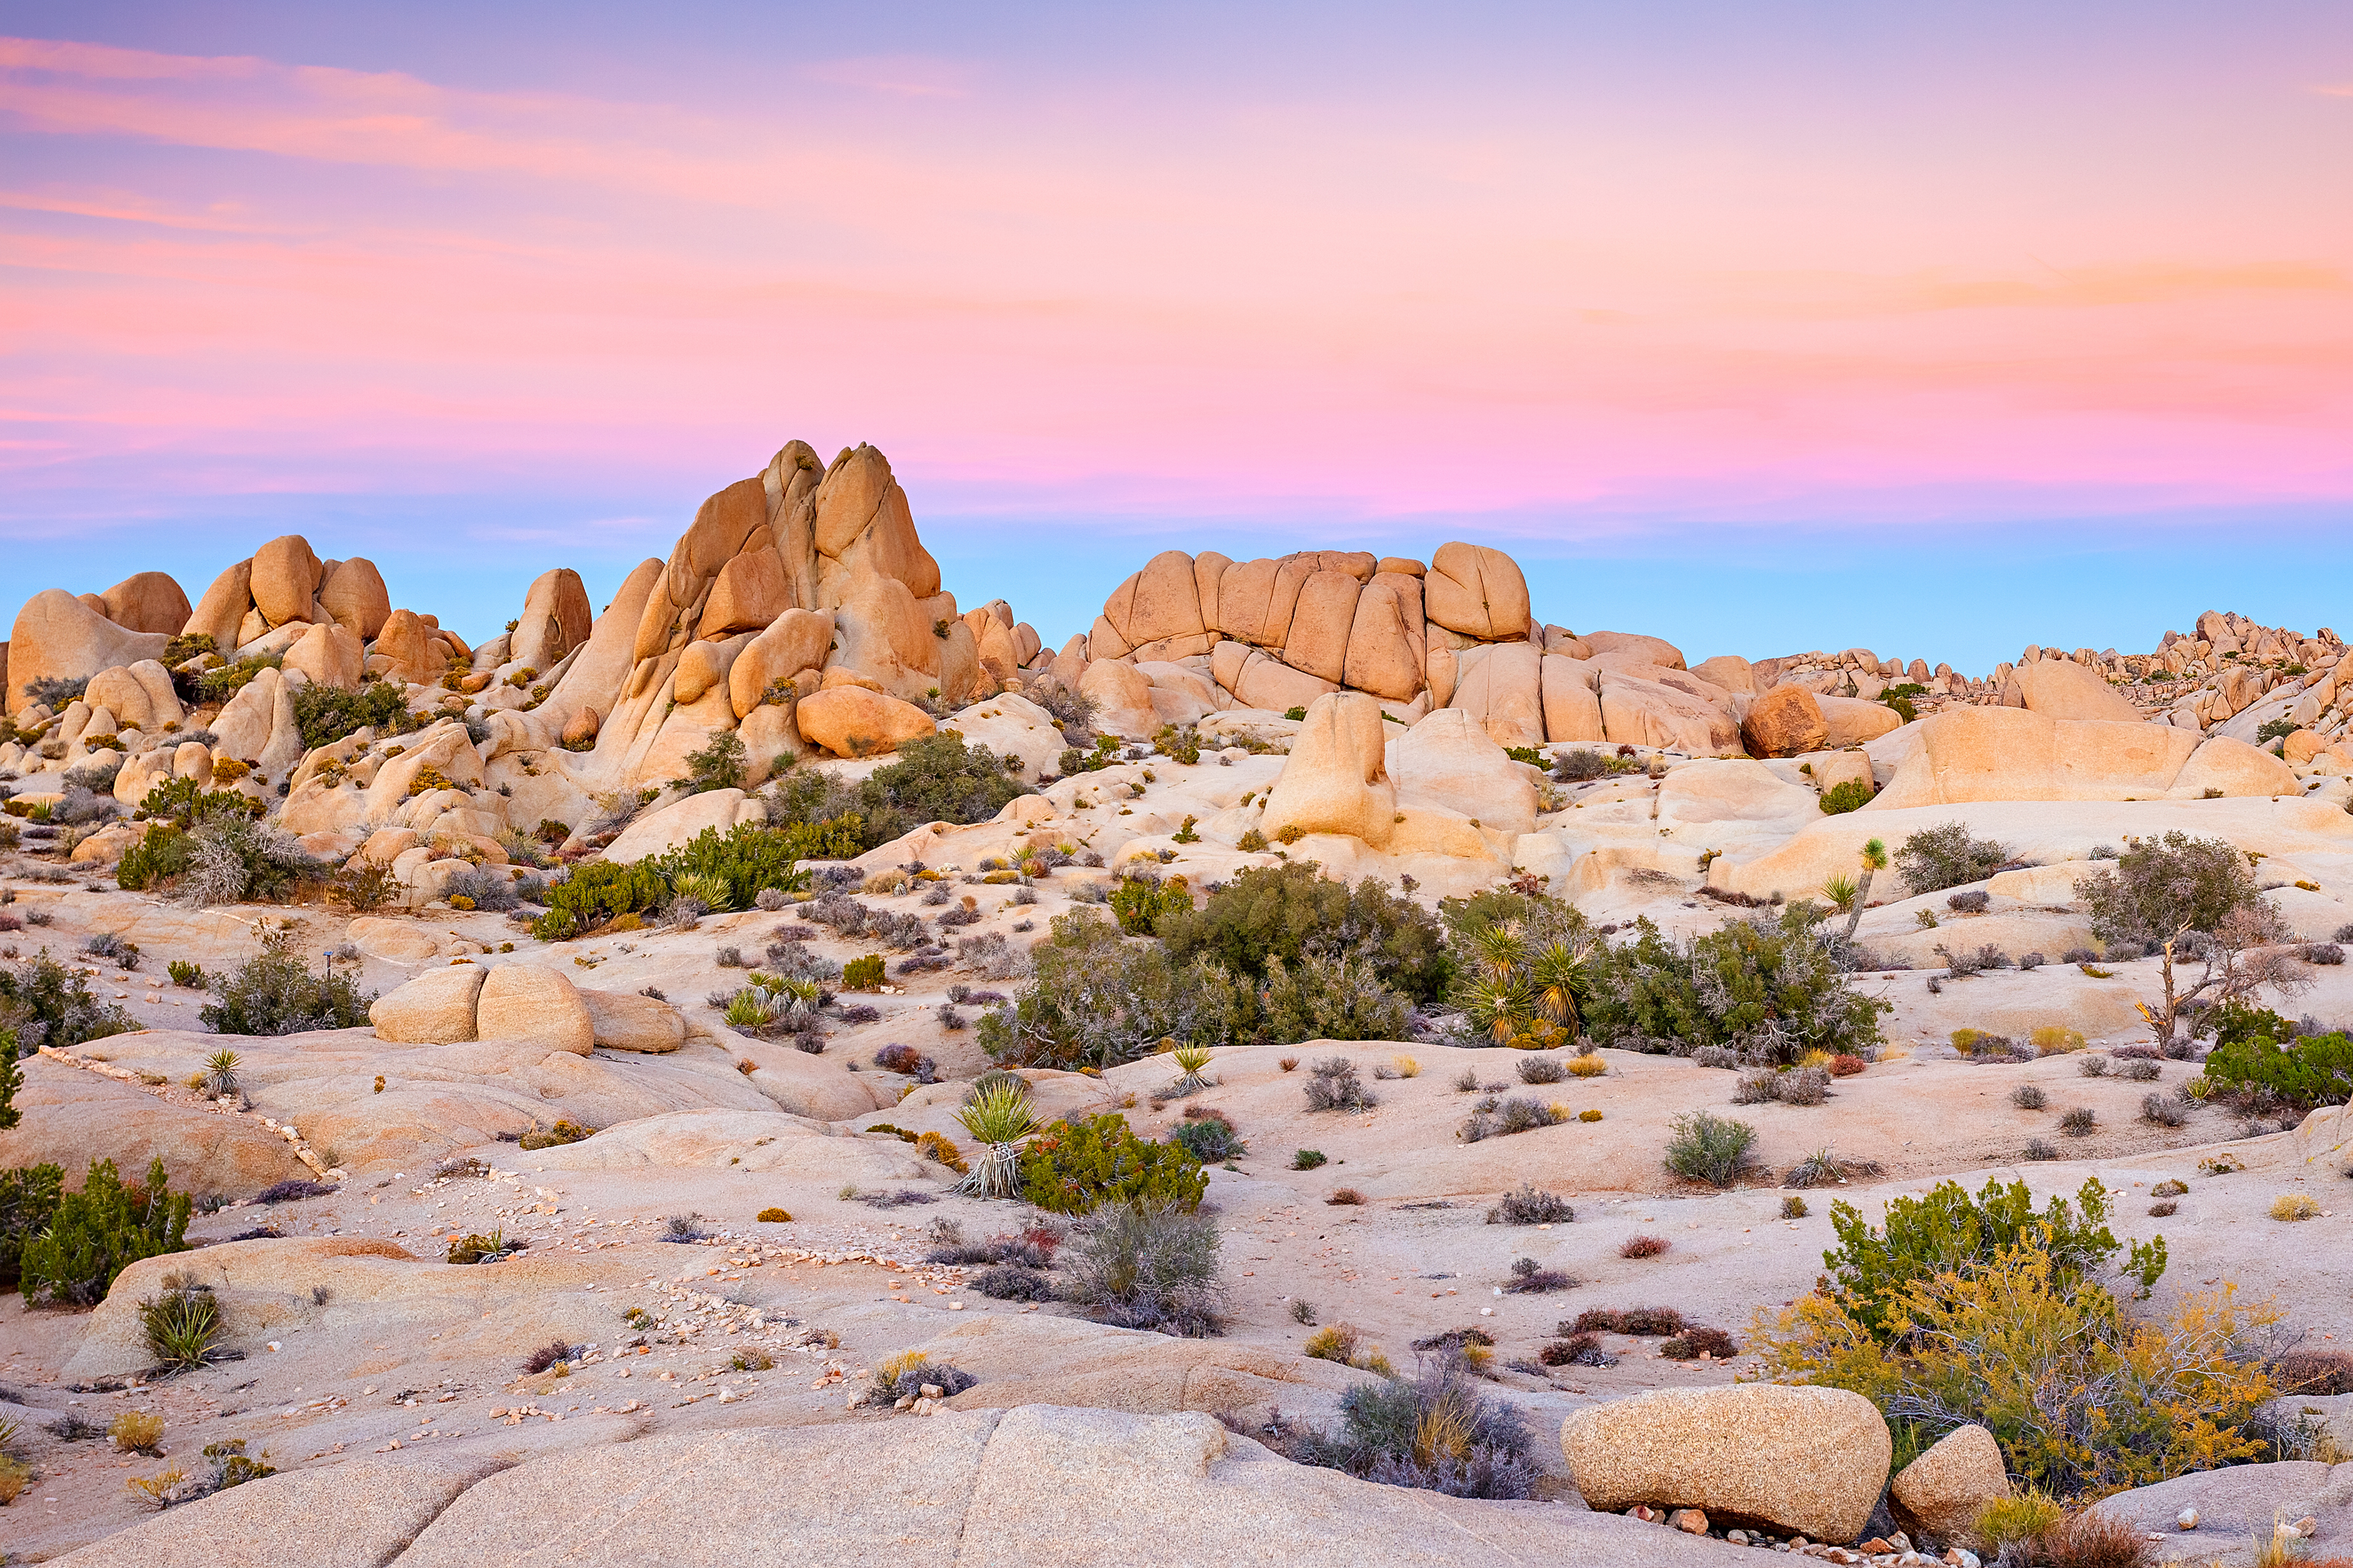 The 10 best National Parks to visit this winter - Curbed